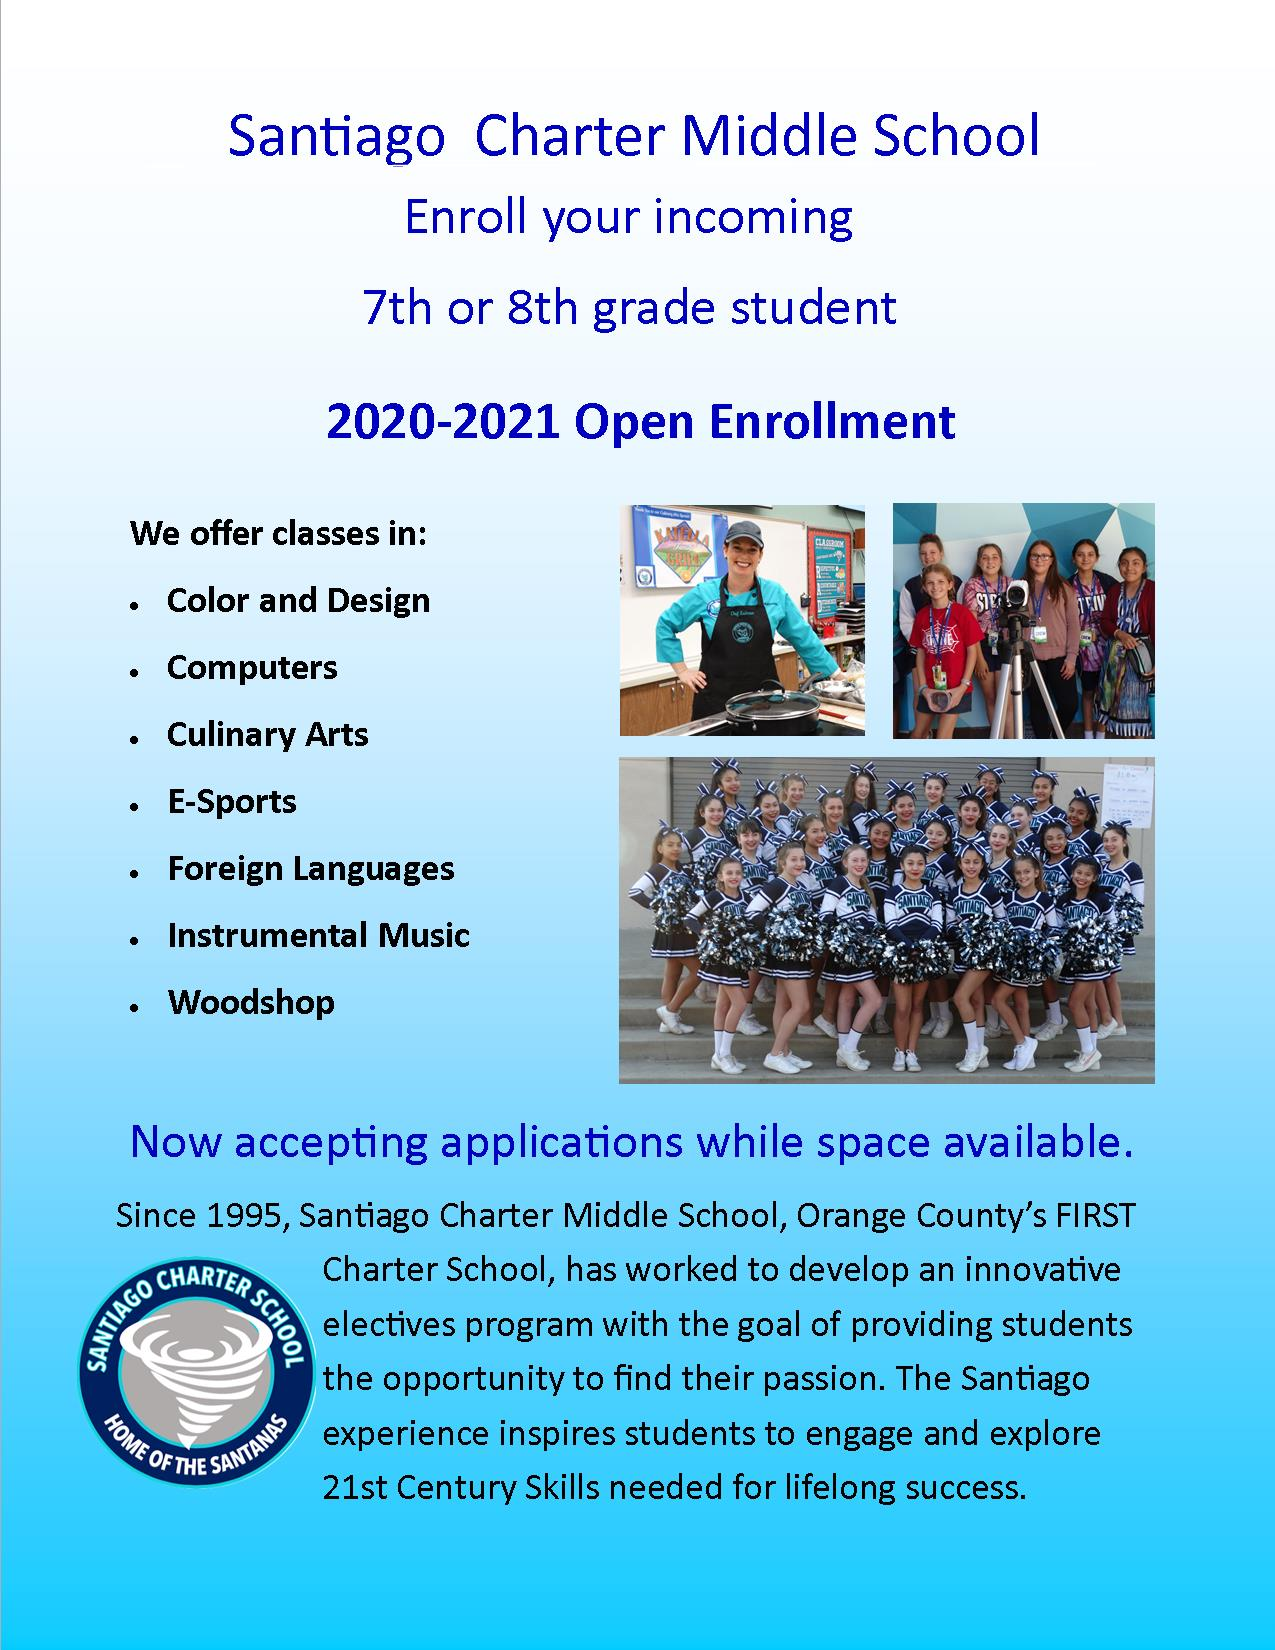 2020-2021 Open Enrollment